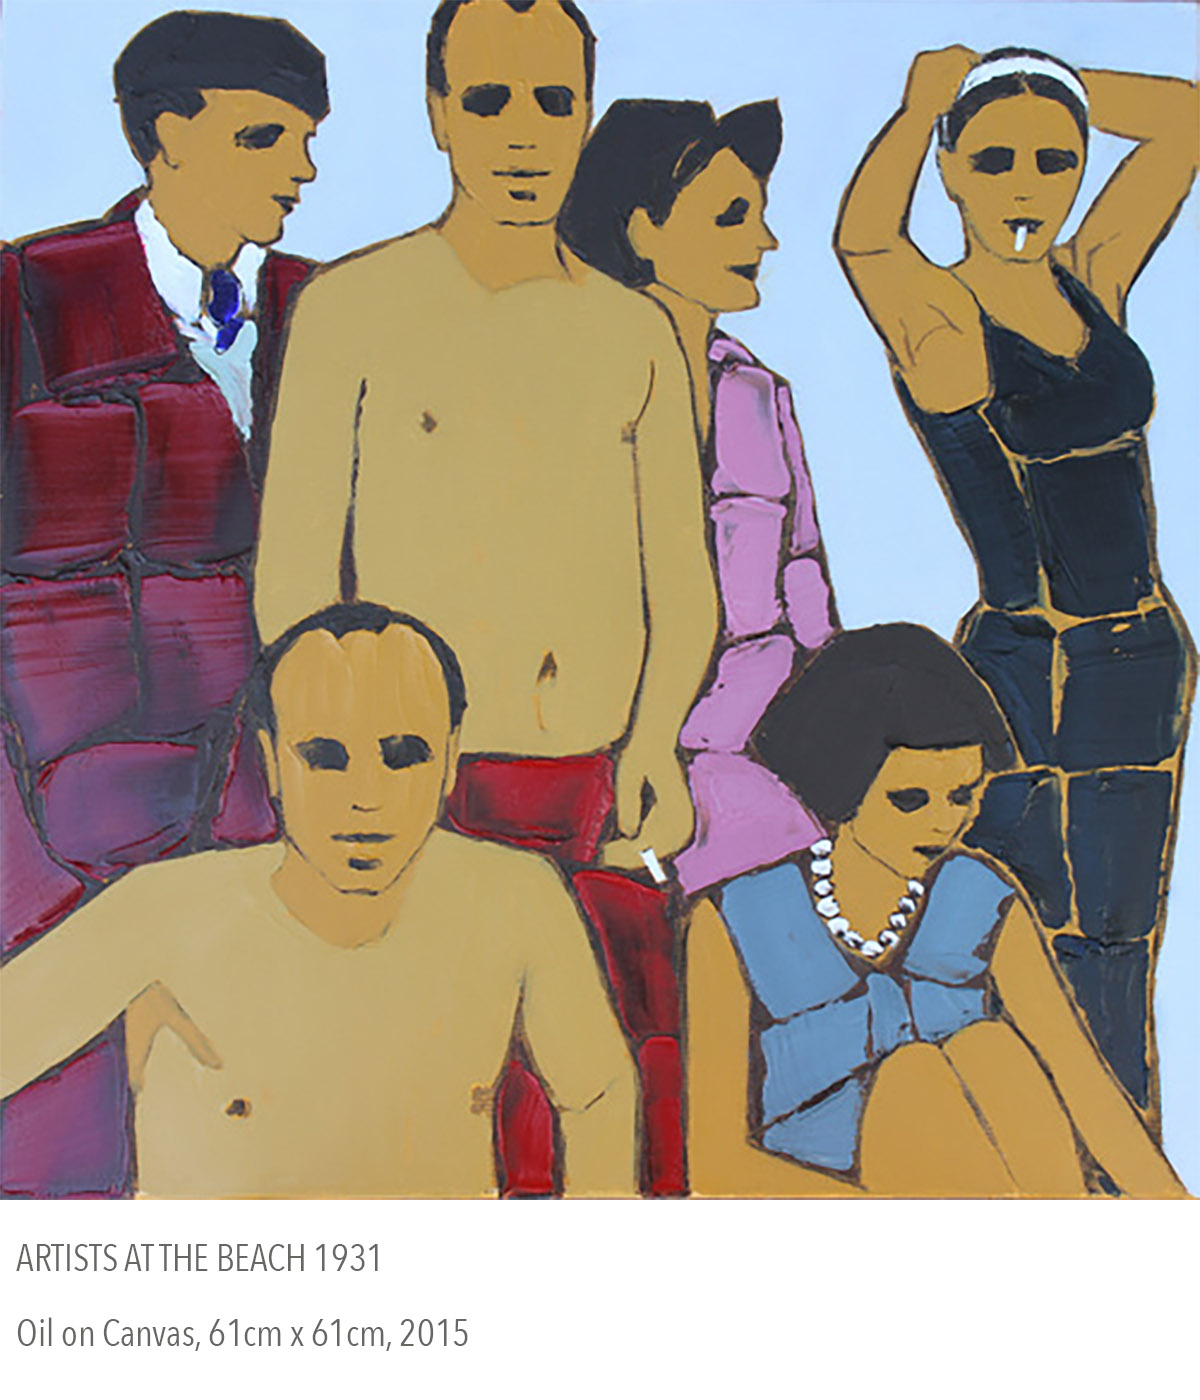 2015 oil painting called Artists at the Beach 1931